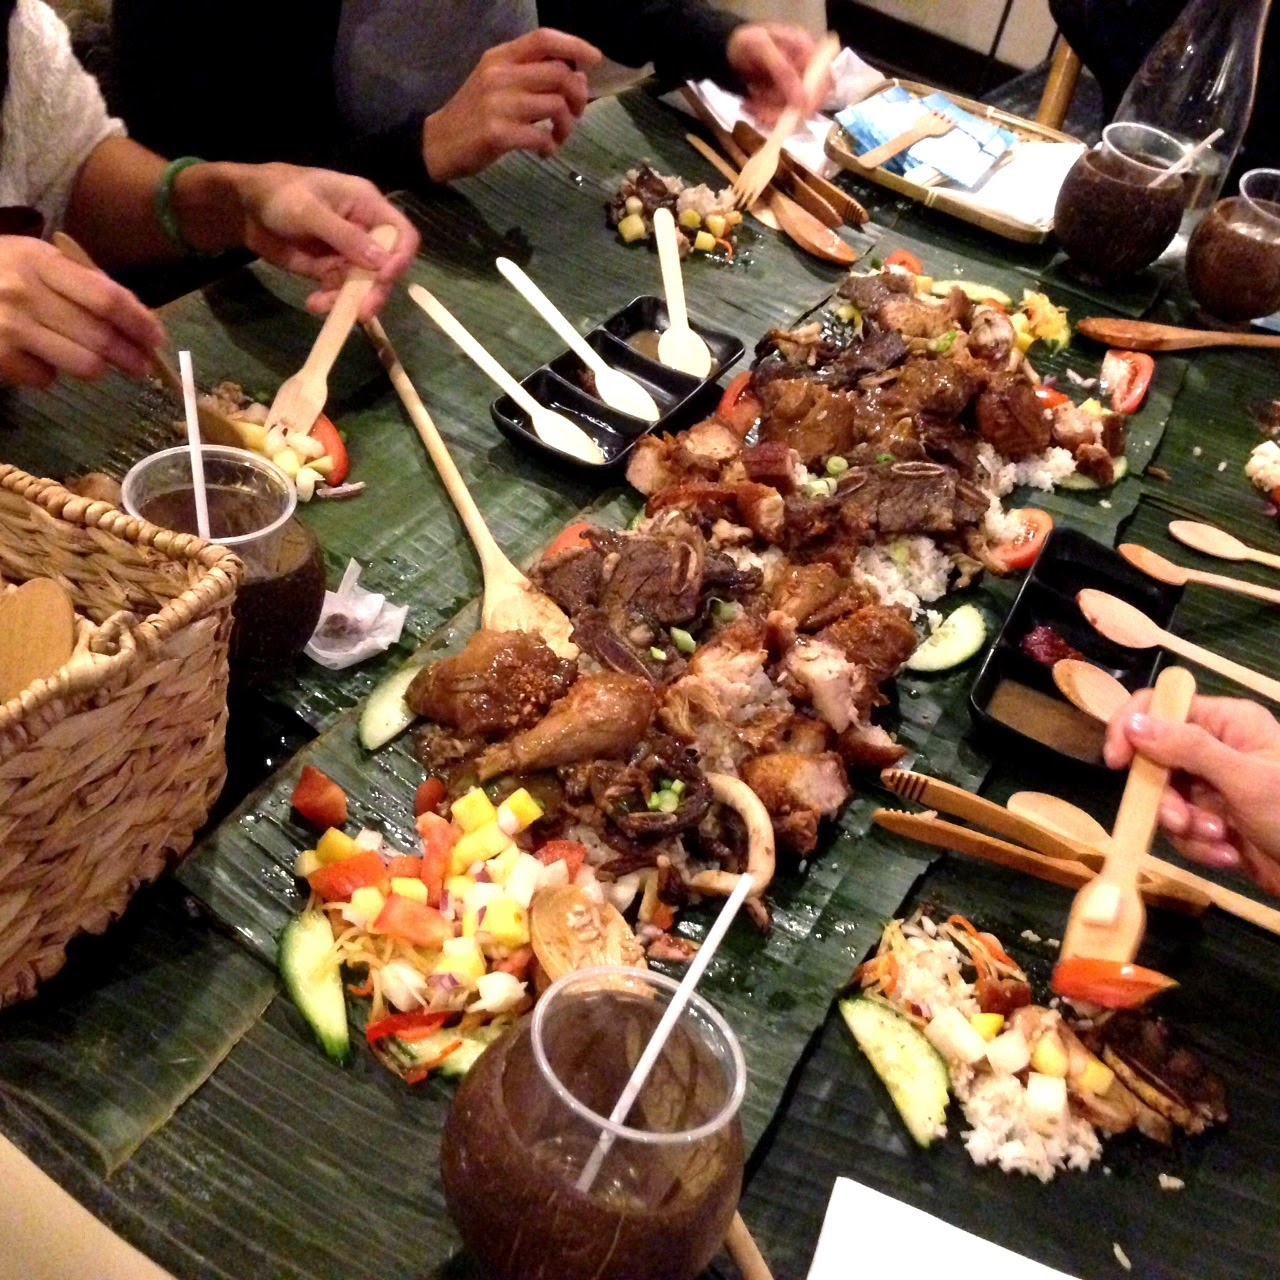 Filipino table setting - Feasting At Casa Manila Restaurant Last Week Which Inspired This Fun Way To Eat Tonight With My Family